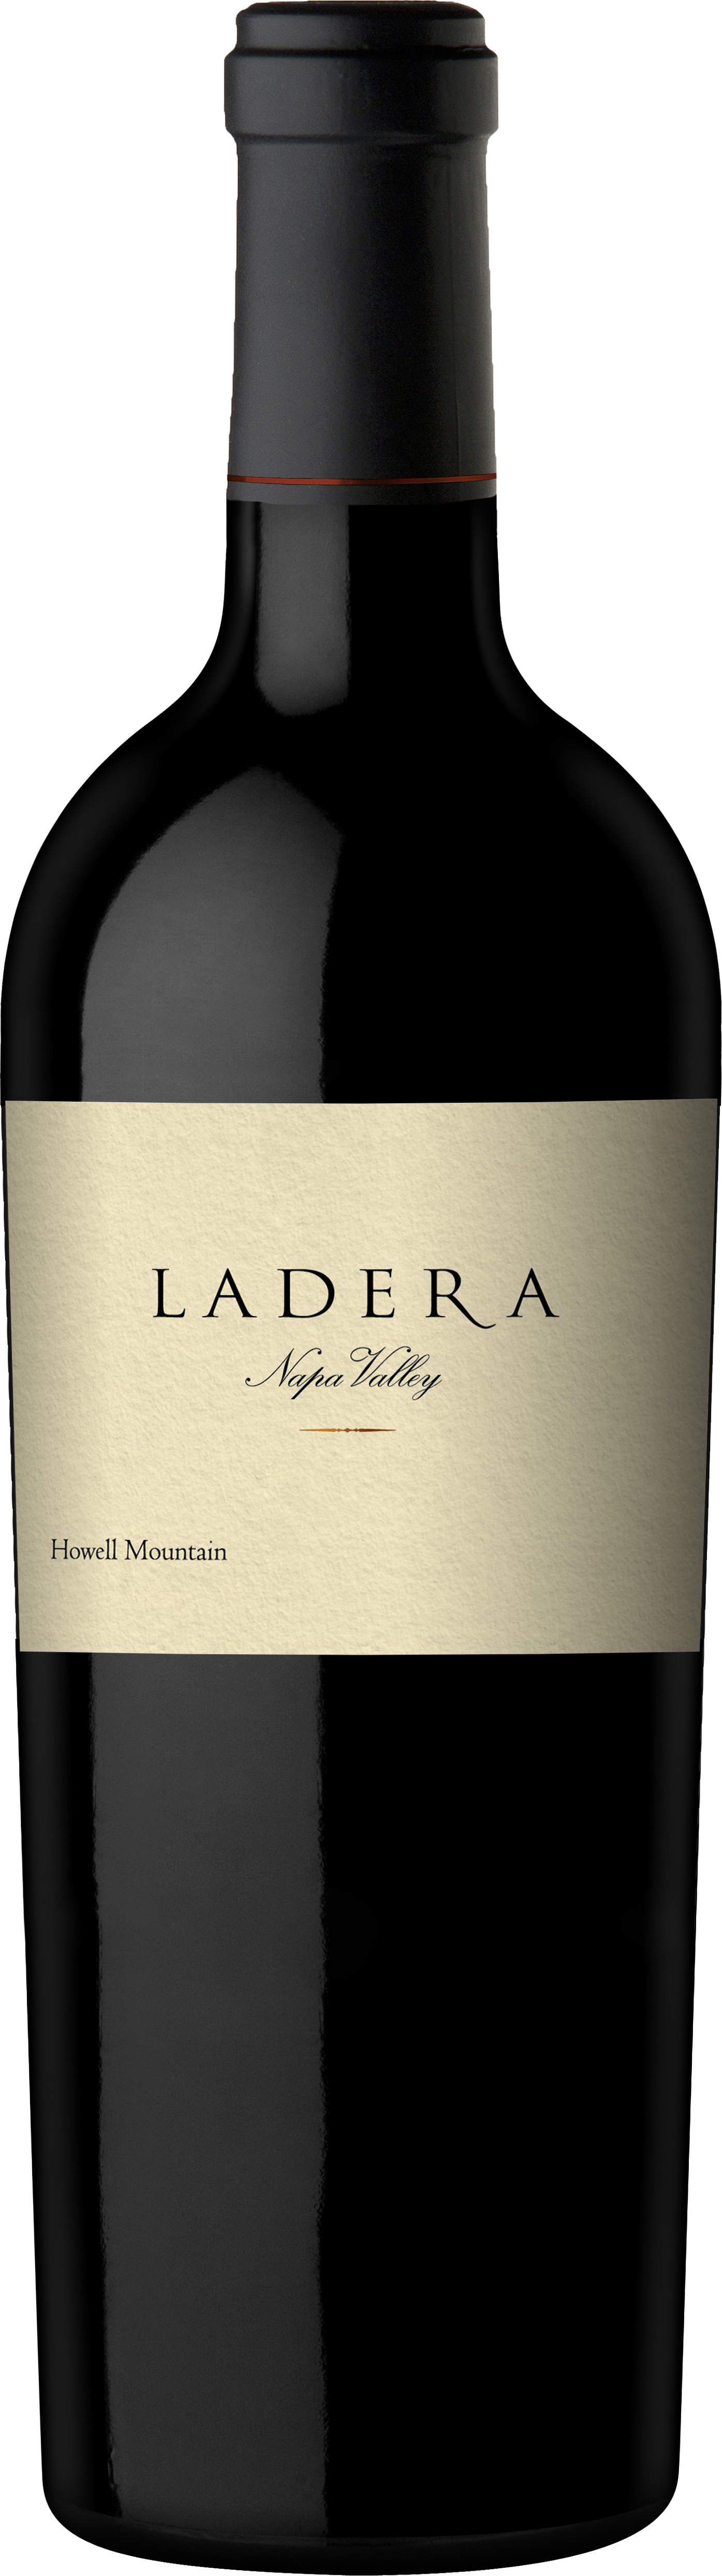 Product Image for 2003 Ladera Howell Mountain Cabernet Sauvignon